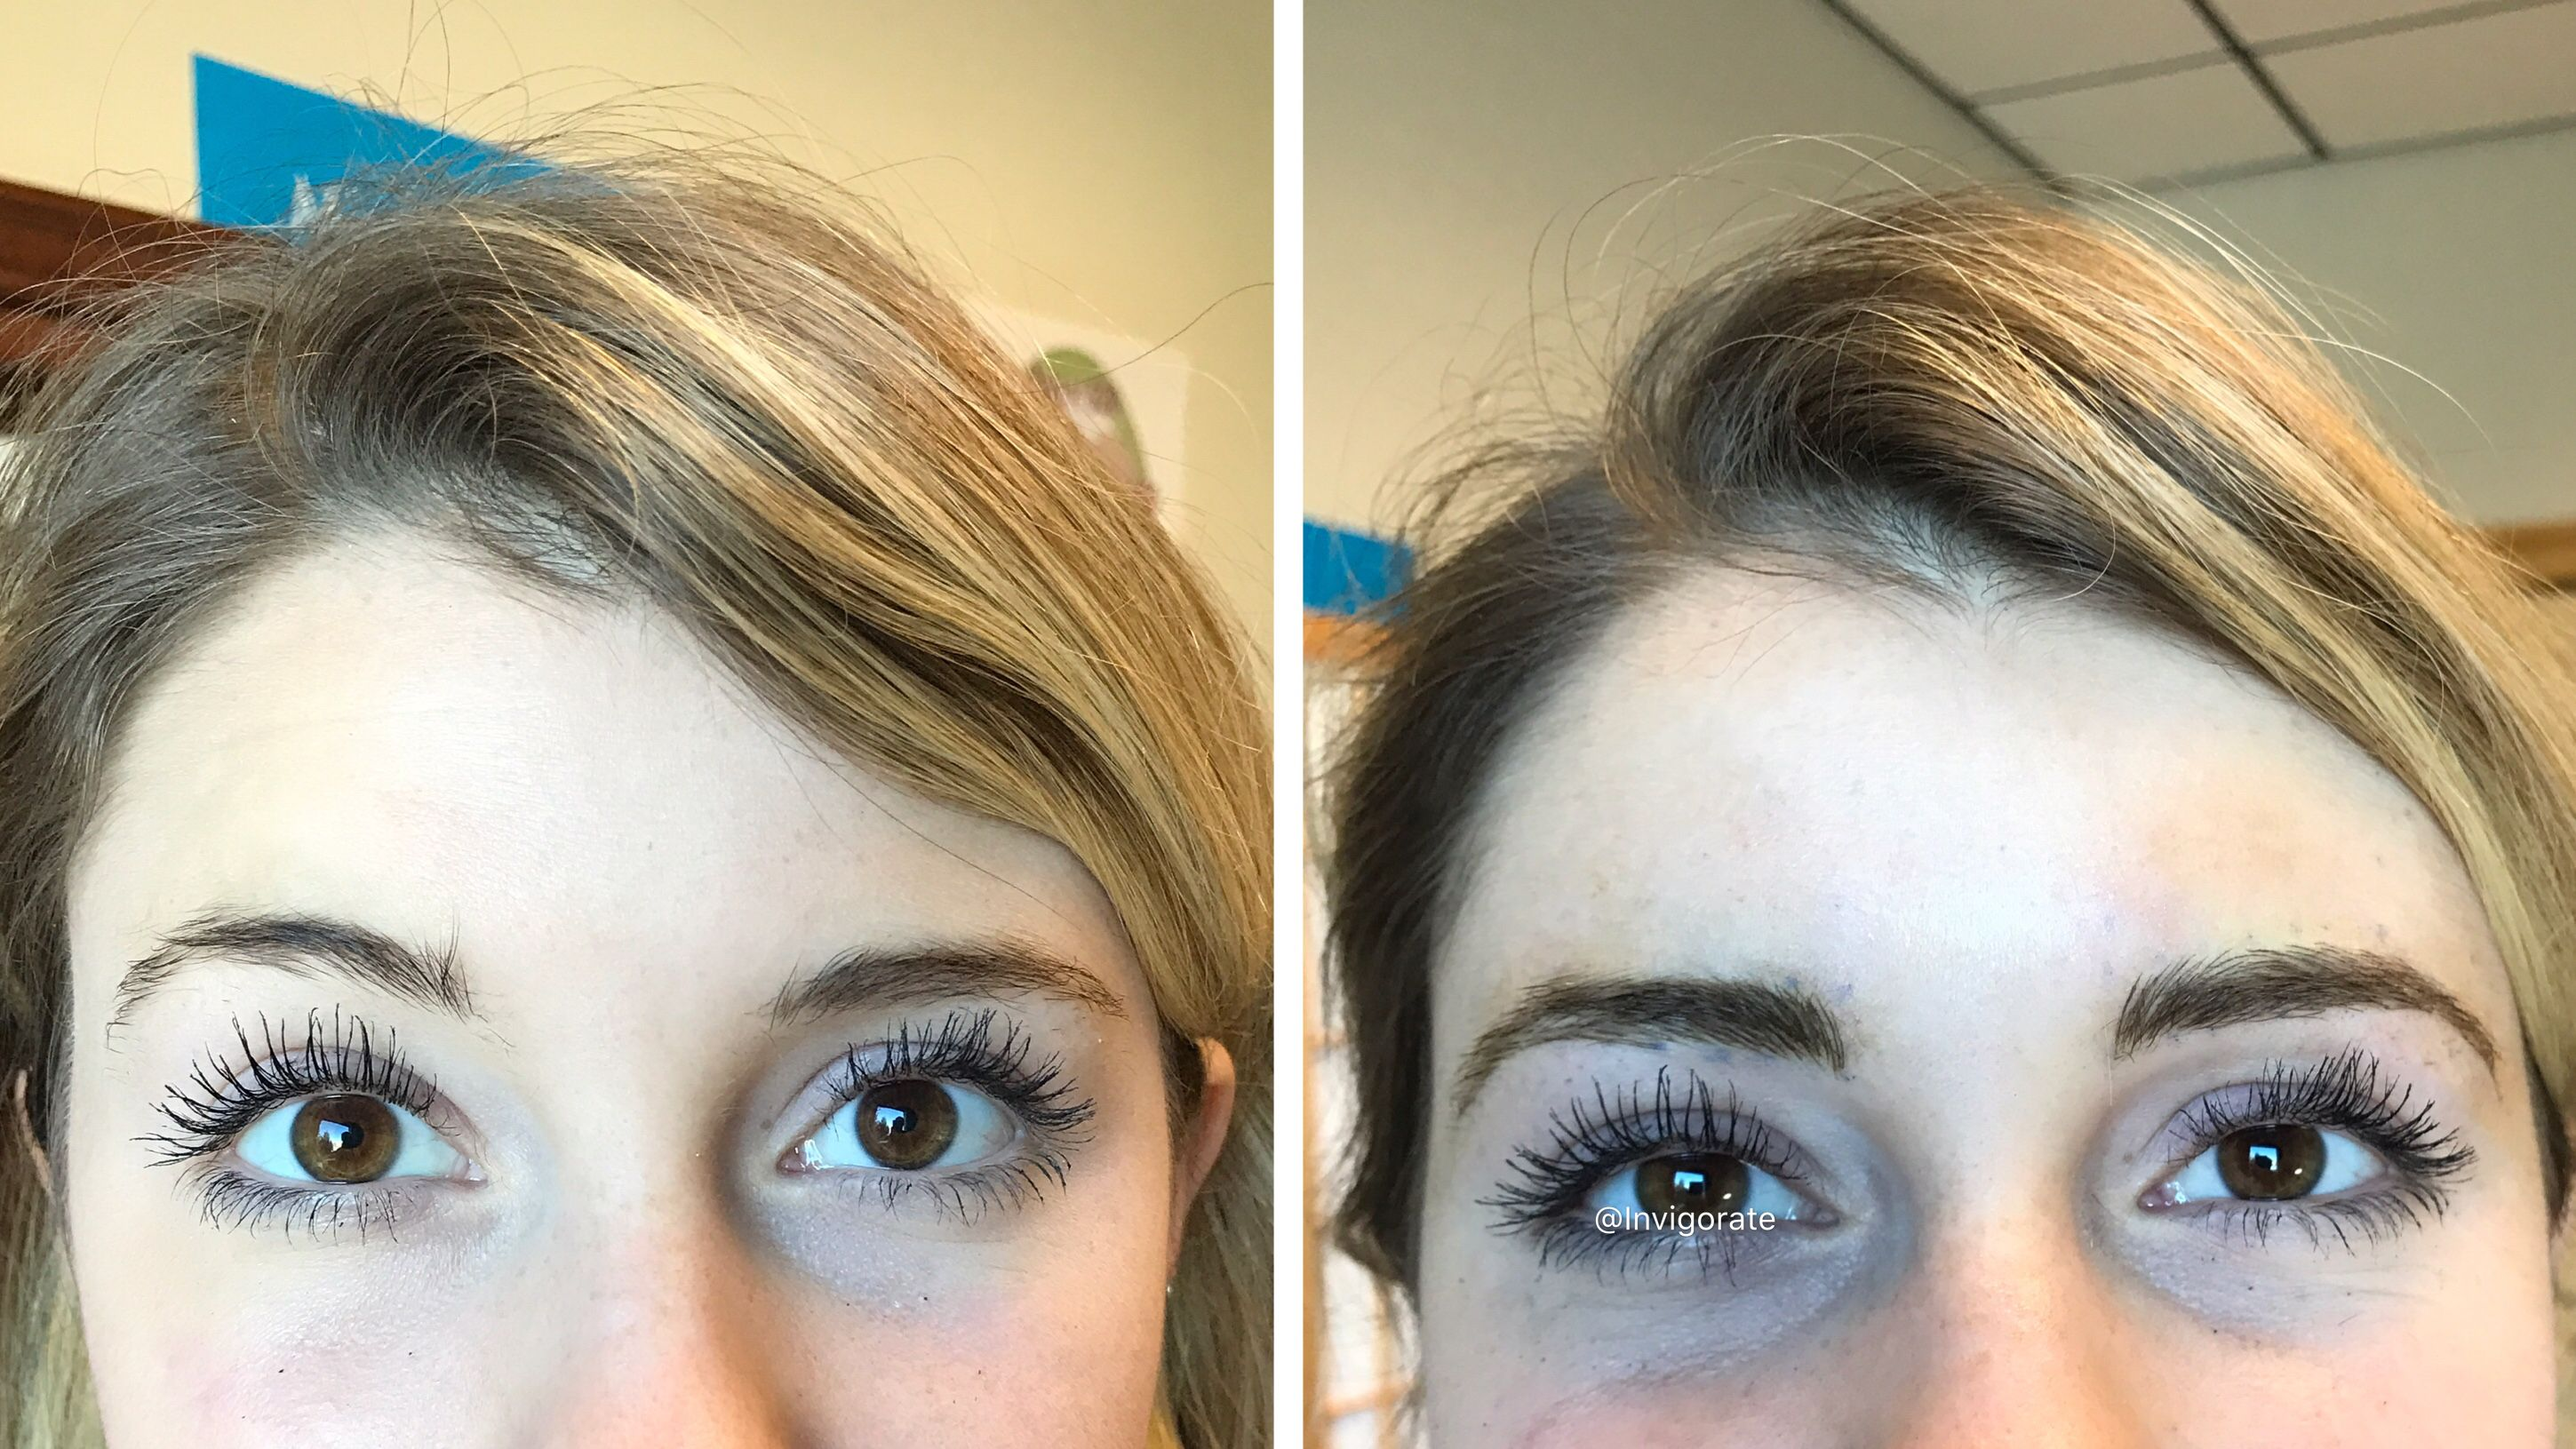 Uneven Eyebrow Problems Microblading Can Fix That Problem Uneven Eyebrows Fix Eyebrows Permanent Makeup Eyebrows